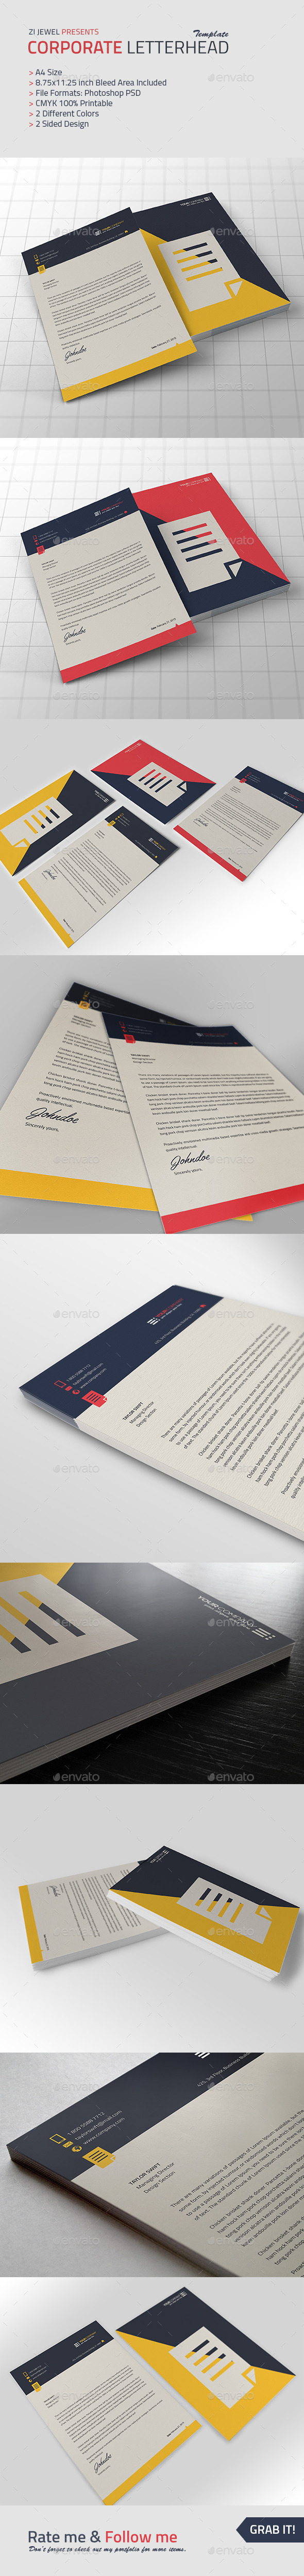 GraphicRiver Corporate Letterhead 10060706